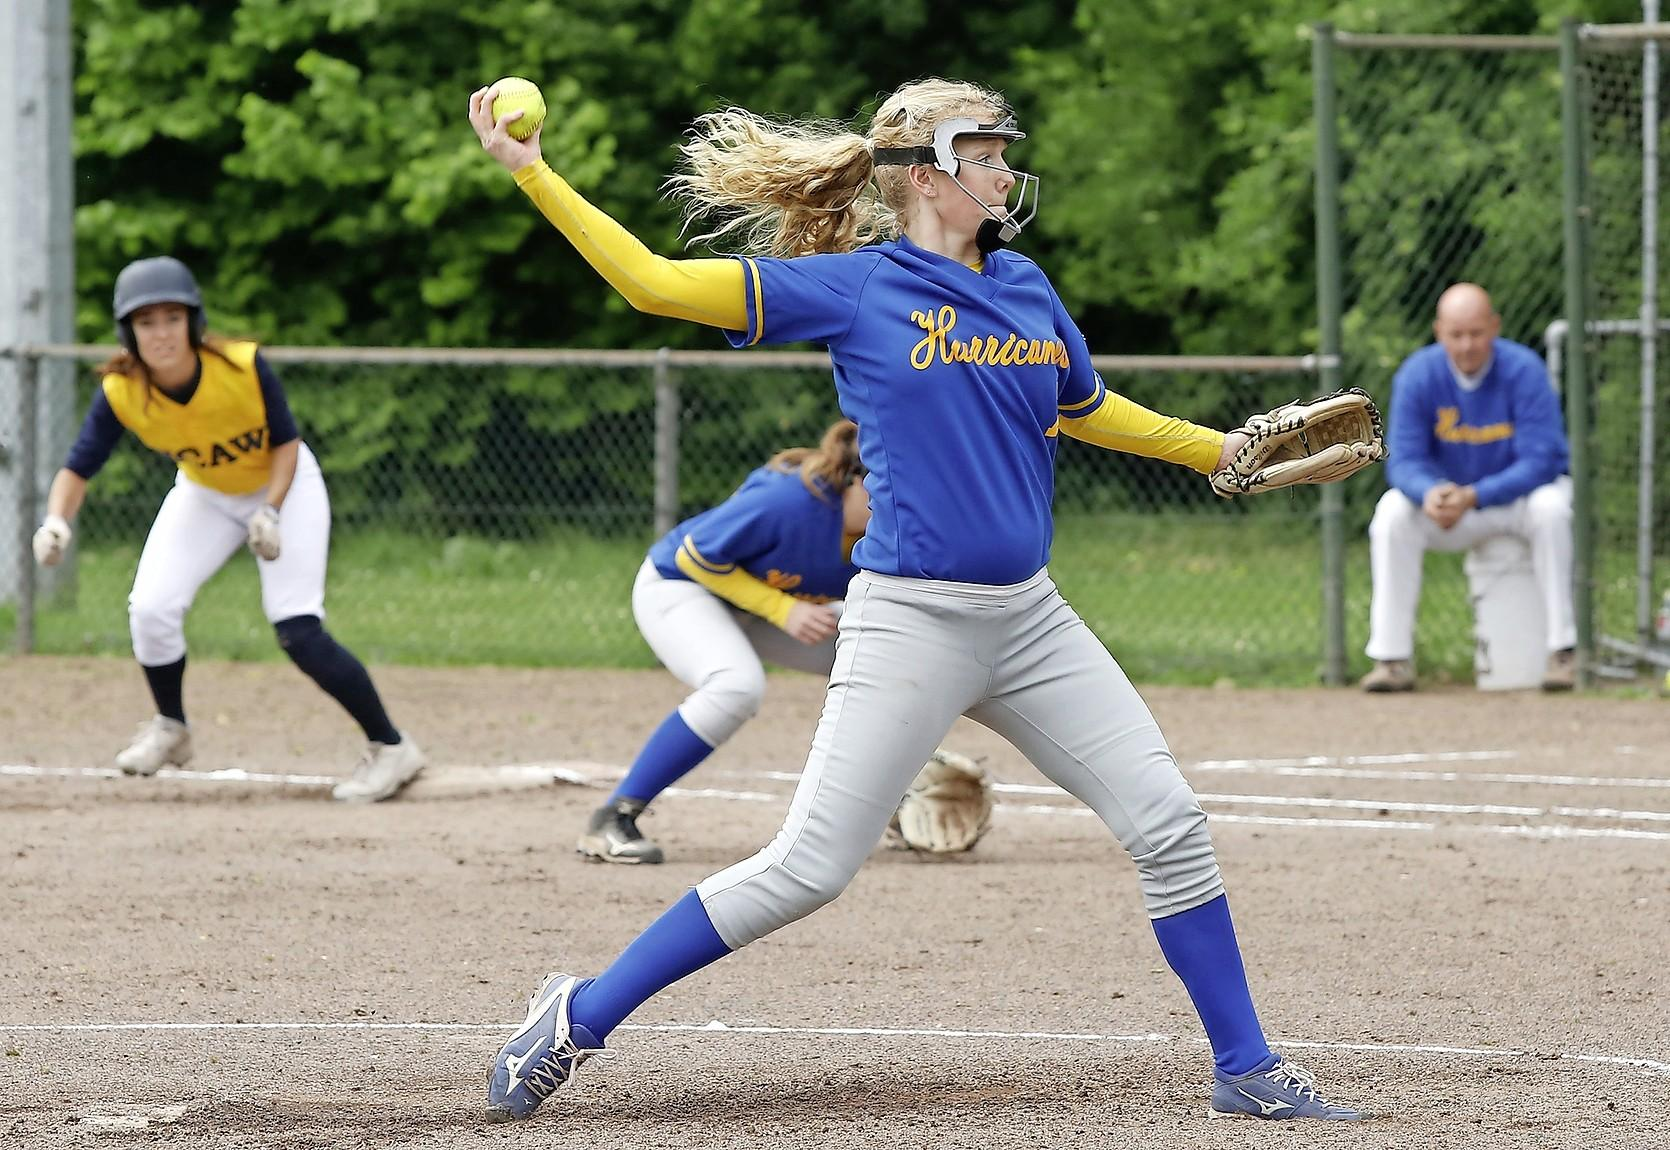 Hurricanes klopt HCAW in softbalderby